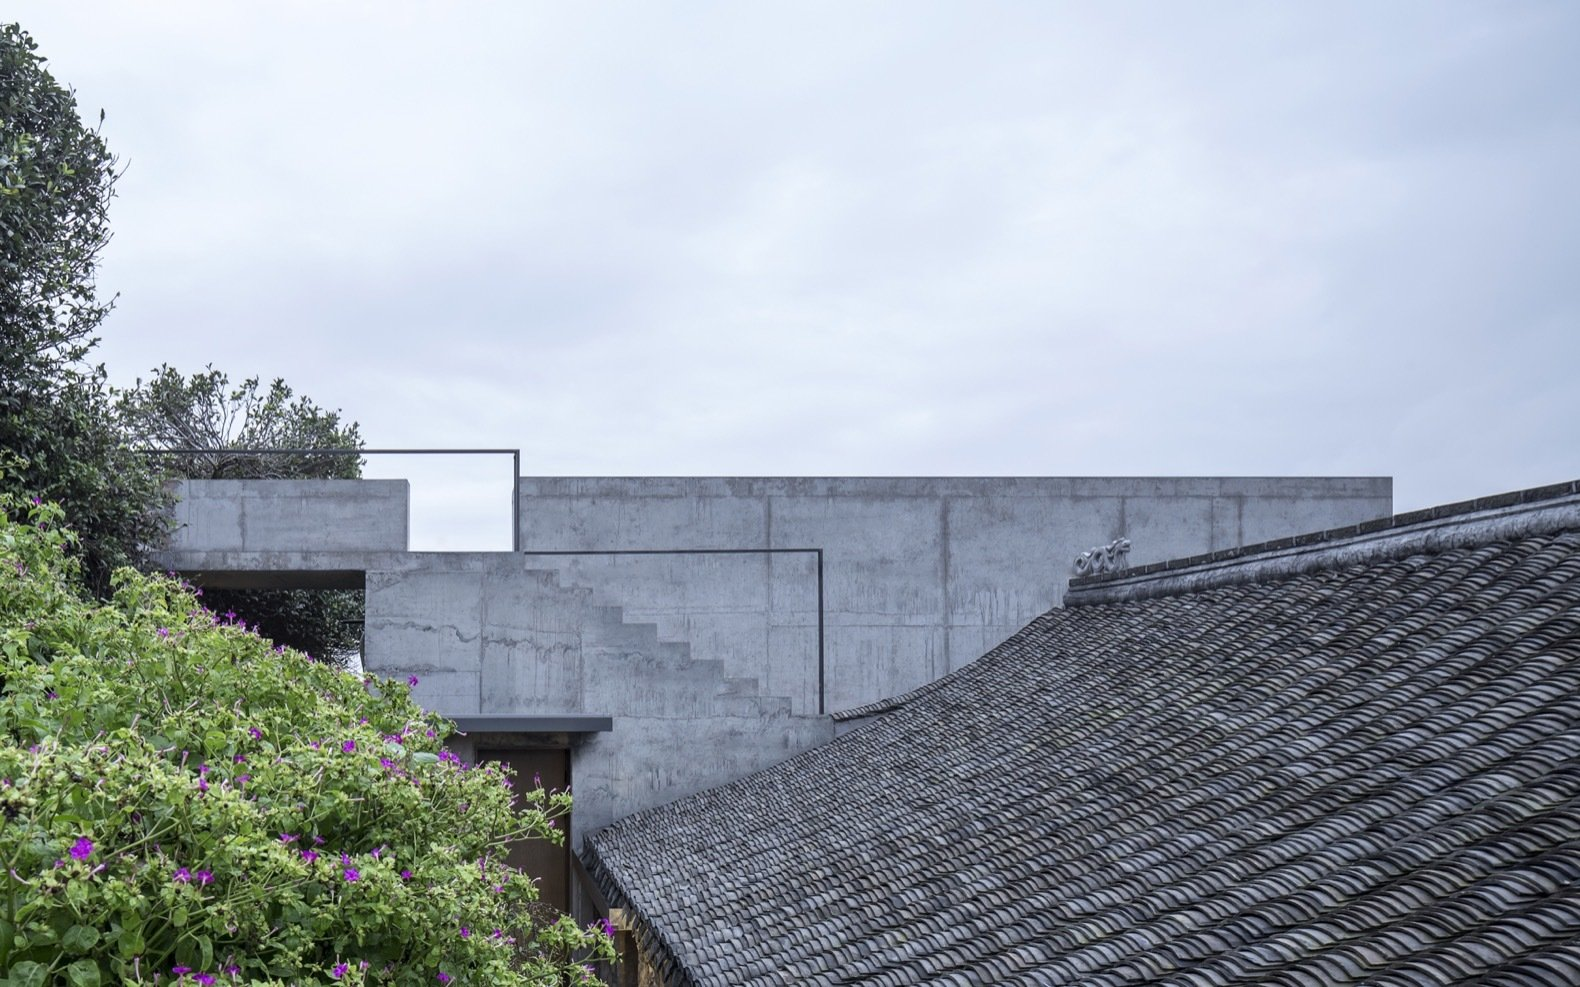 concrete-steps-lead-up-to-the-concretes-extensions-roof-deck-and-also-connects-to-the-courtyard-of-the-second-building